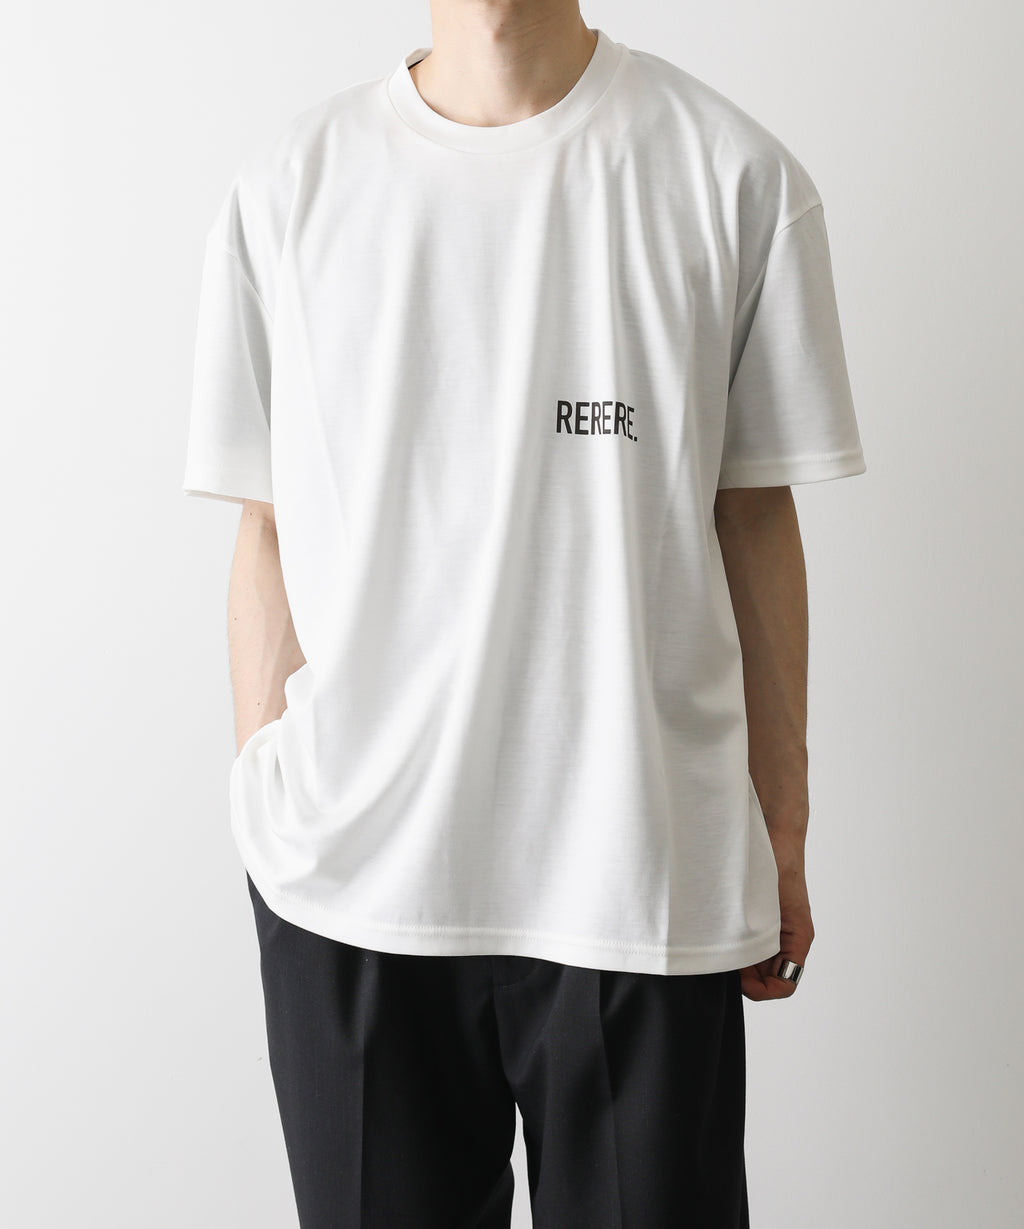 stein シュタイン PRINT TEE - RE LOOP - WHITE ST.257 session